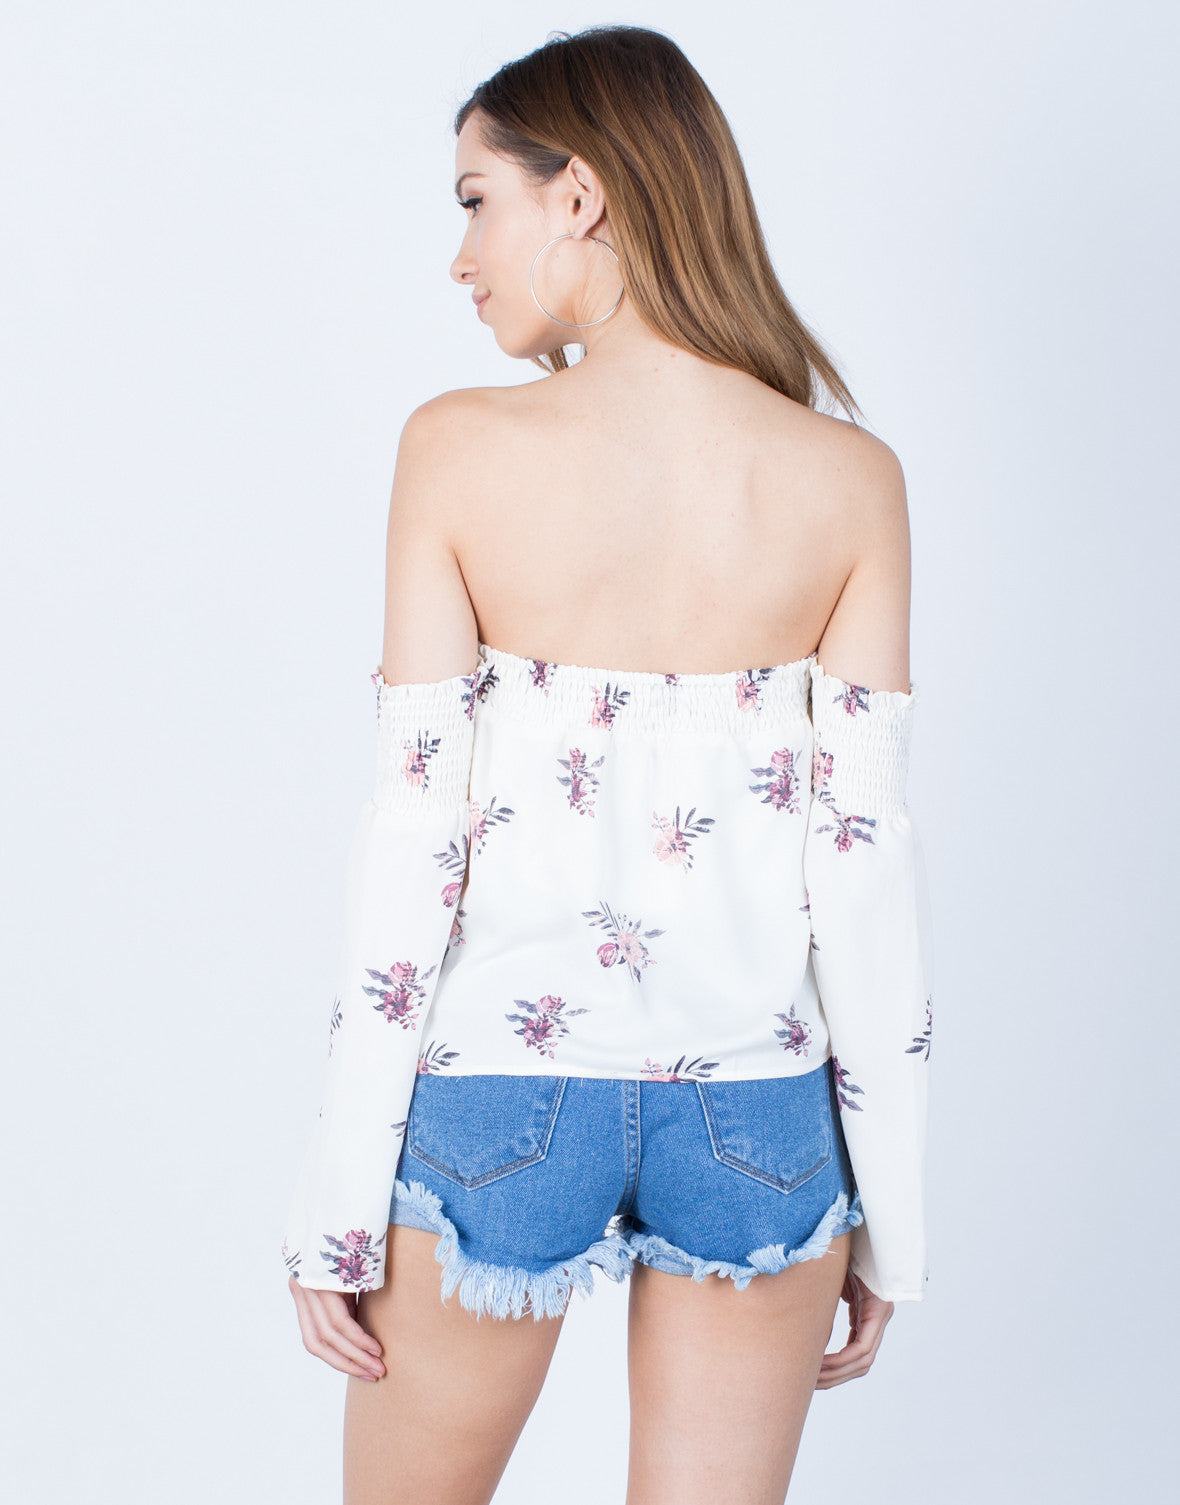 Back View of Pretty in Floral Top